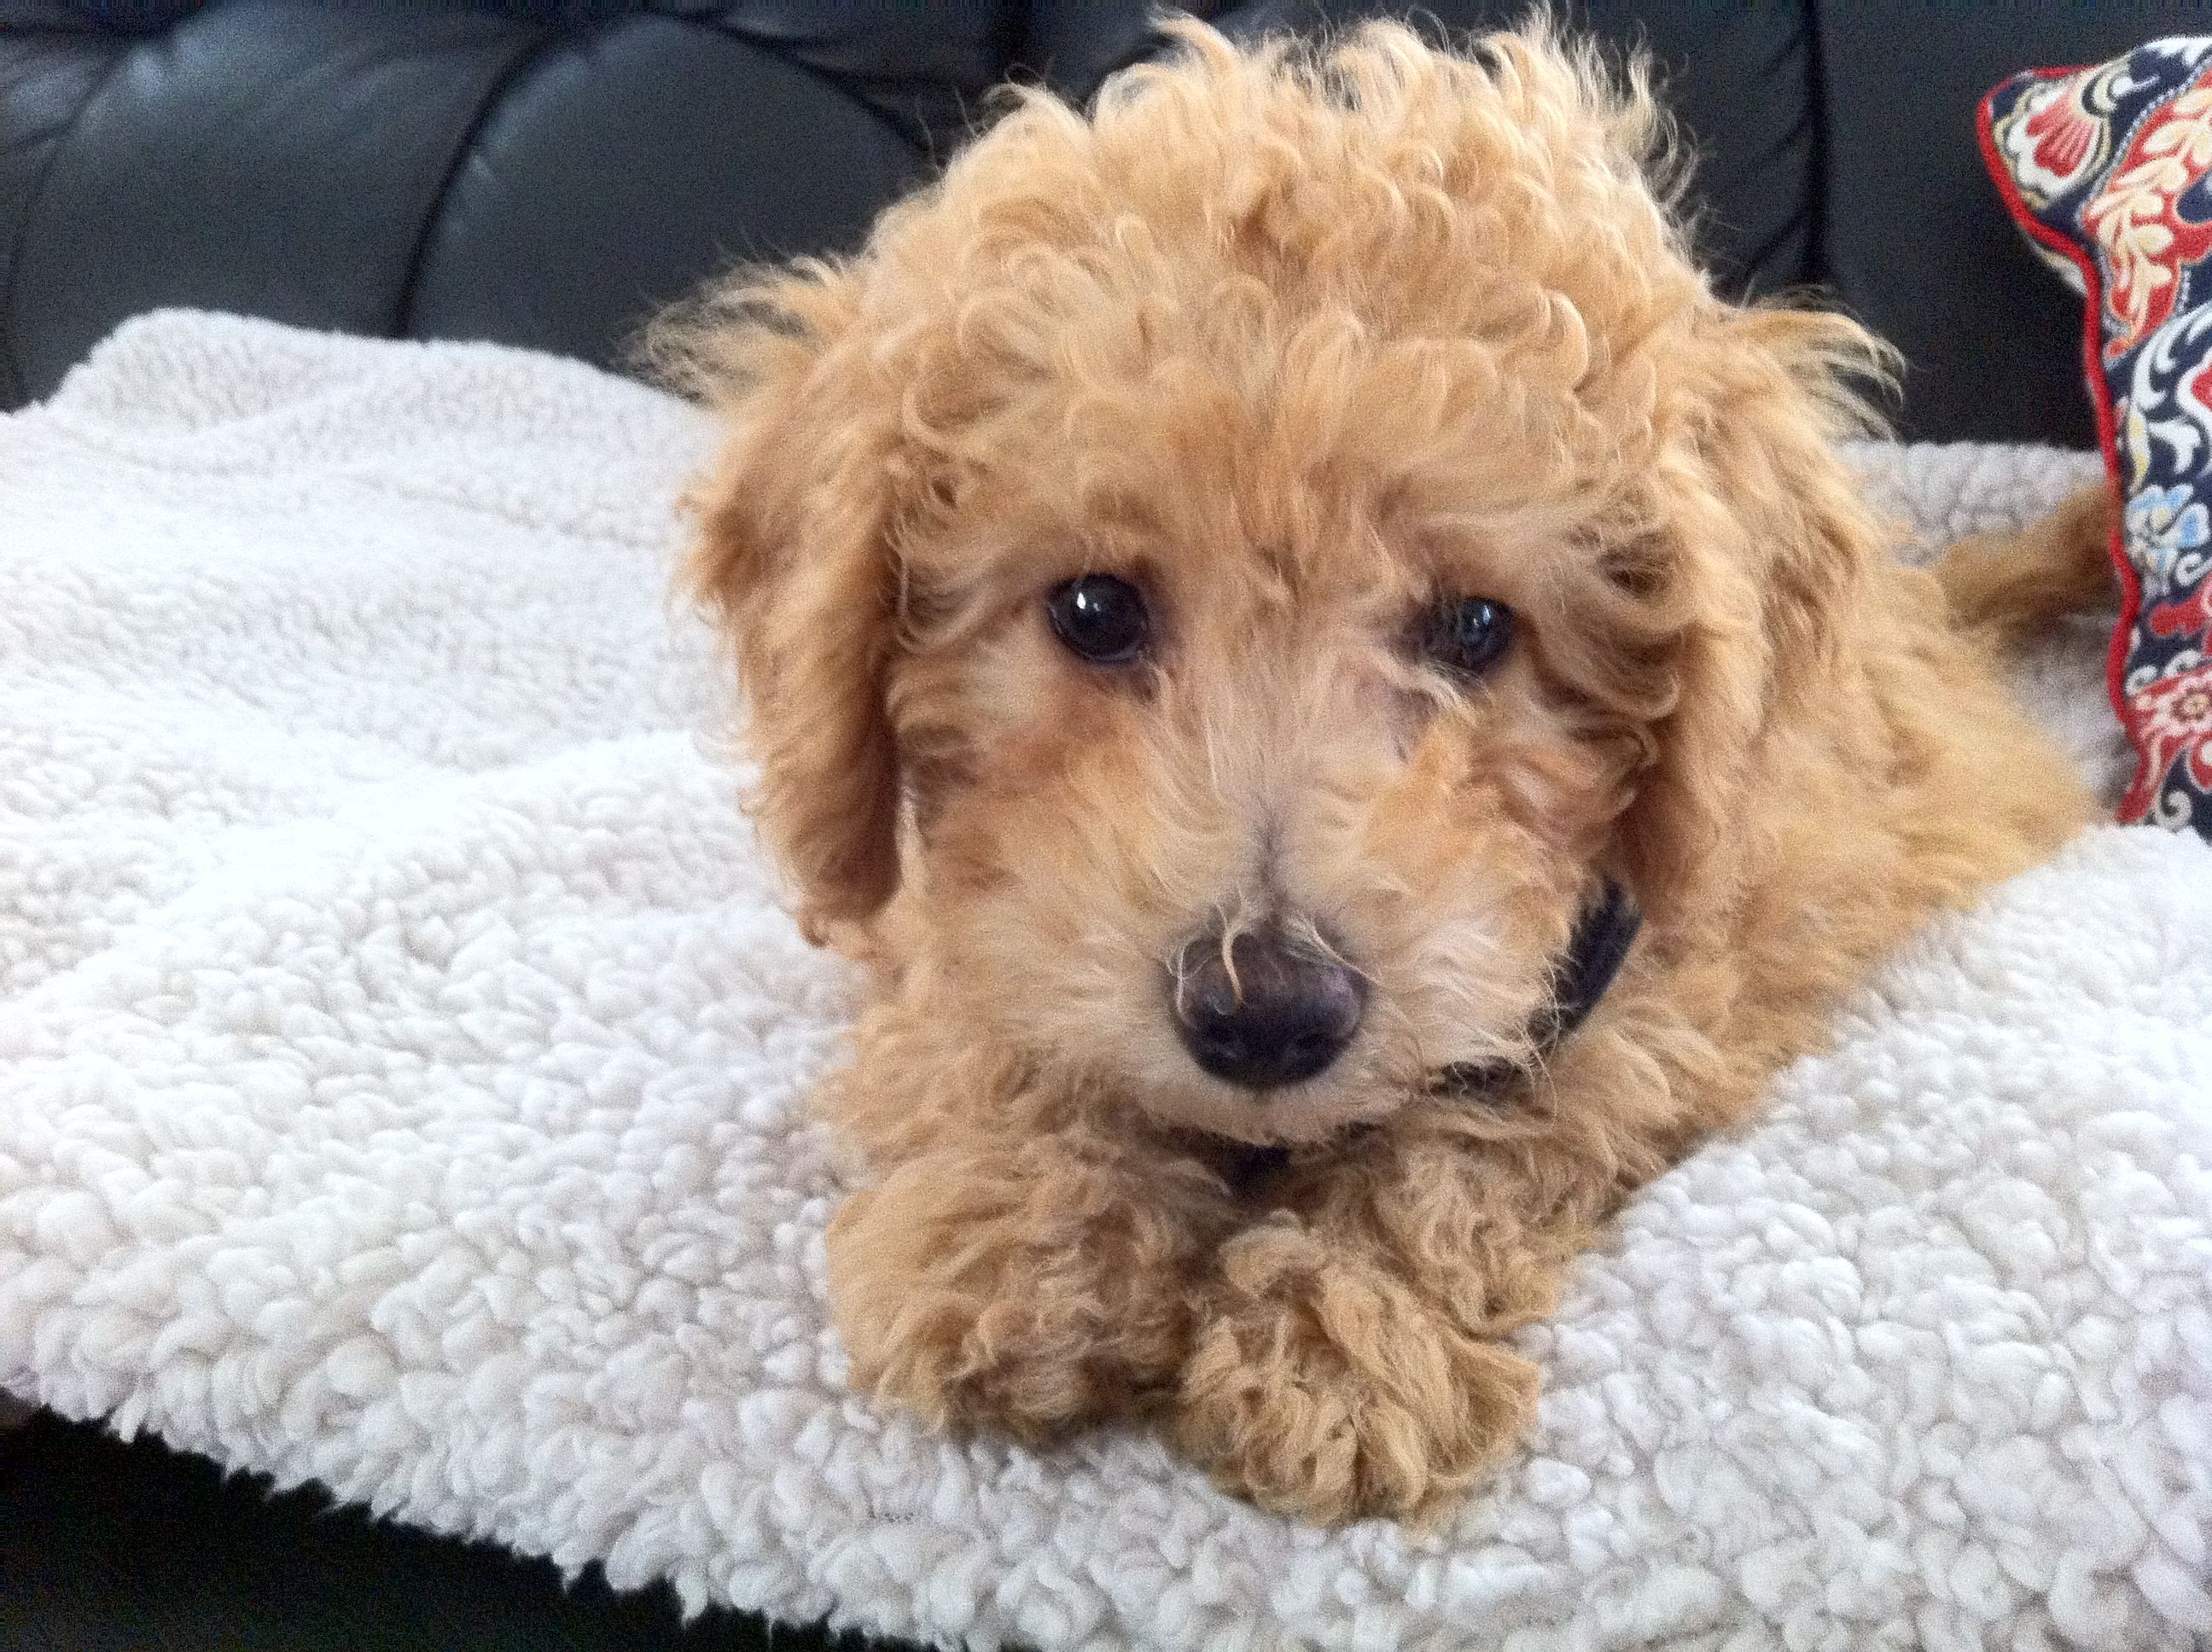 Copper My Rescued 10 Week Old Male Apricot Bichpoo What A Wonderful Dog Poochon Puppies Puppies Bichon